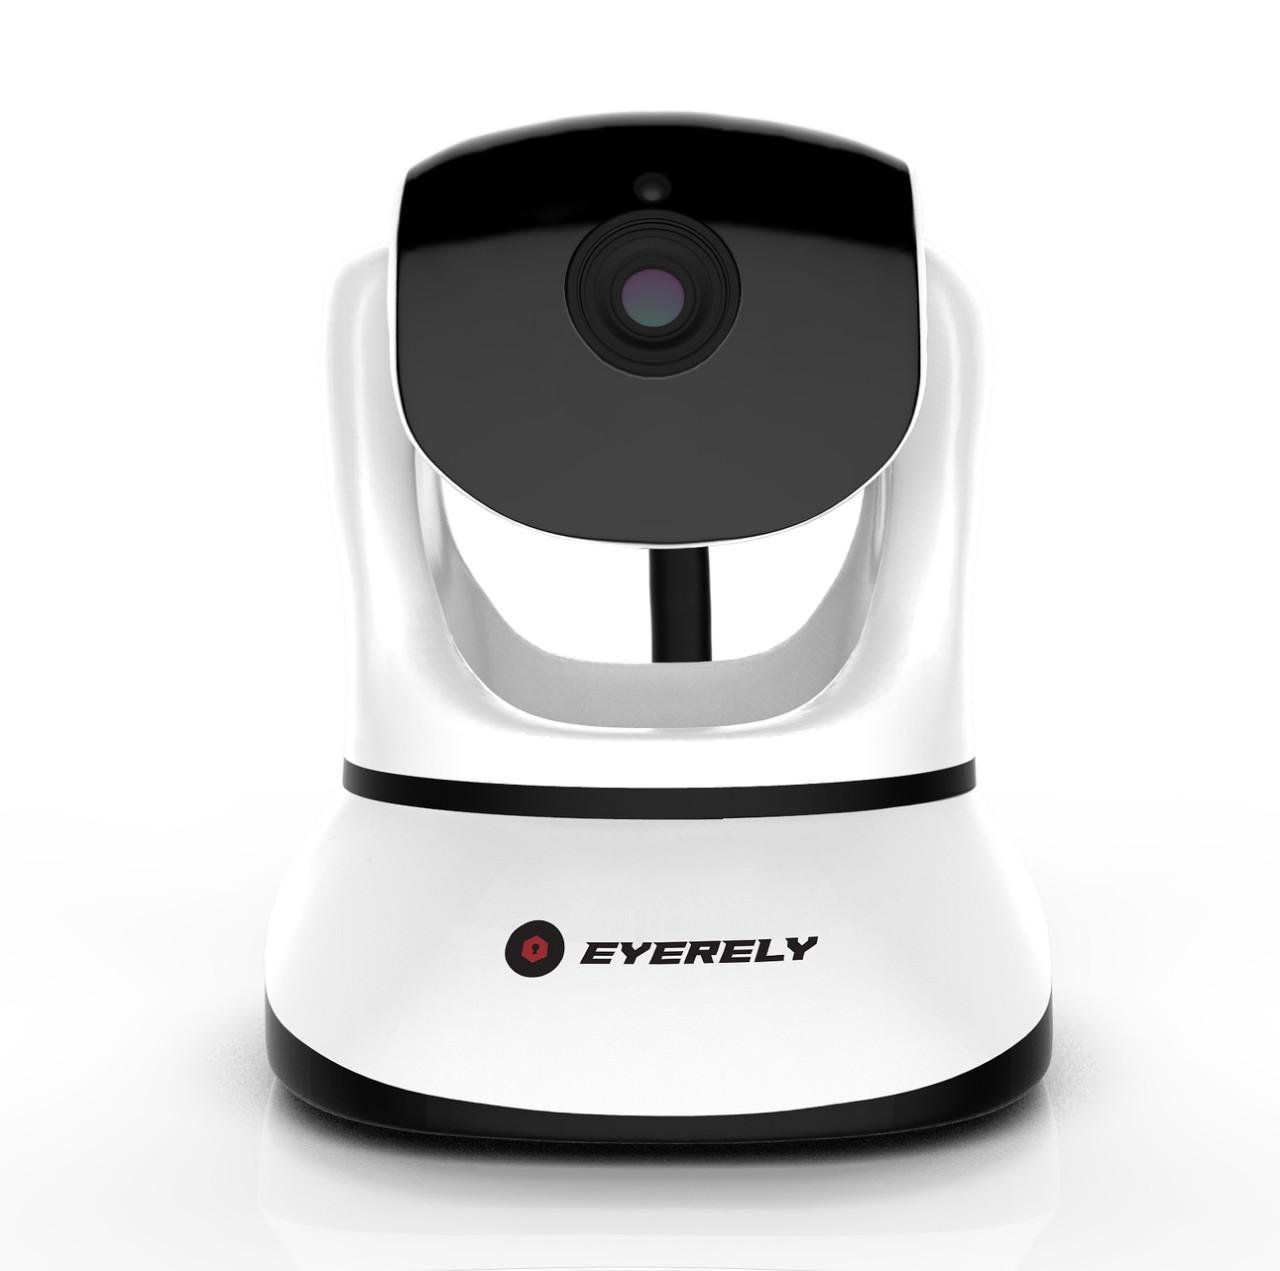 17b9bb72e Get Quotations · Eyerely Home Security Camera  1080P Wifi IP Surveillance  System Wireless Cam